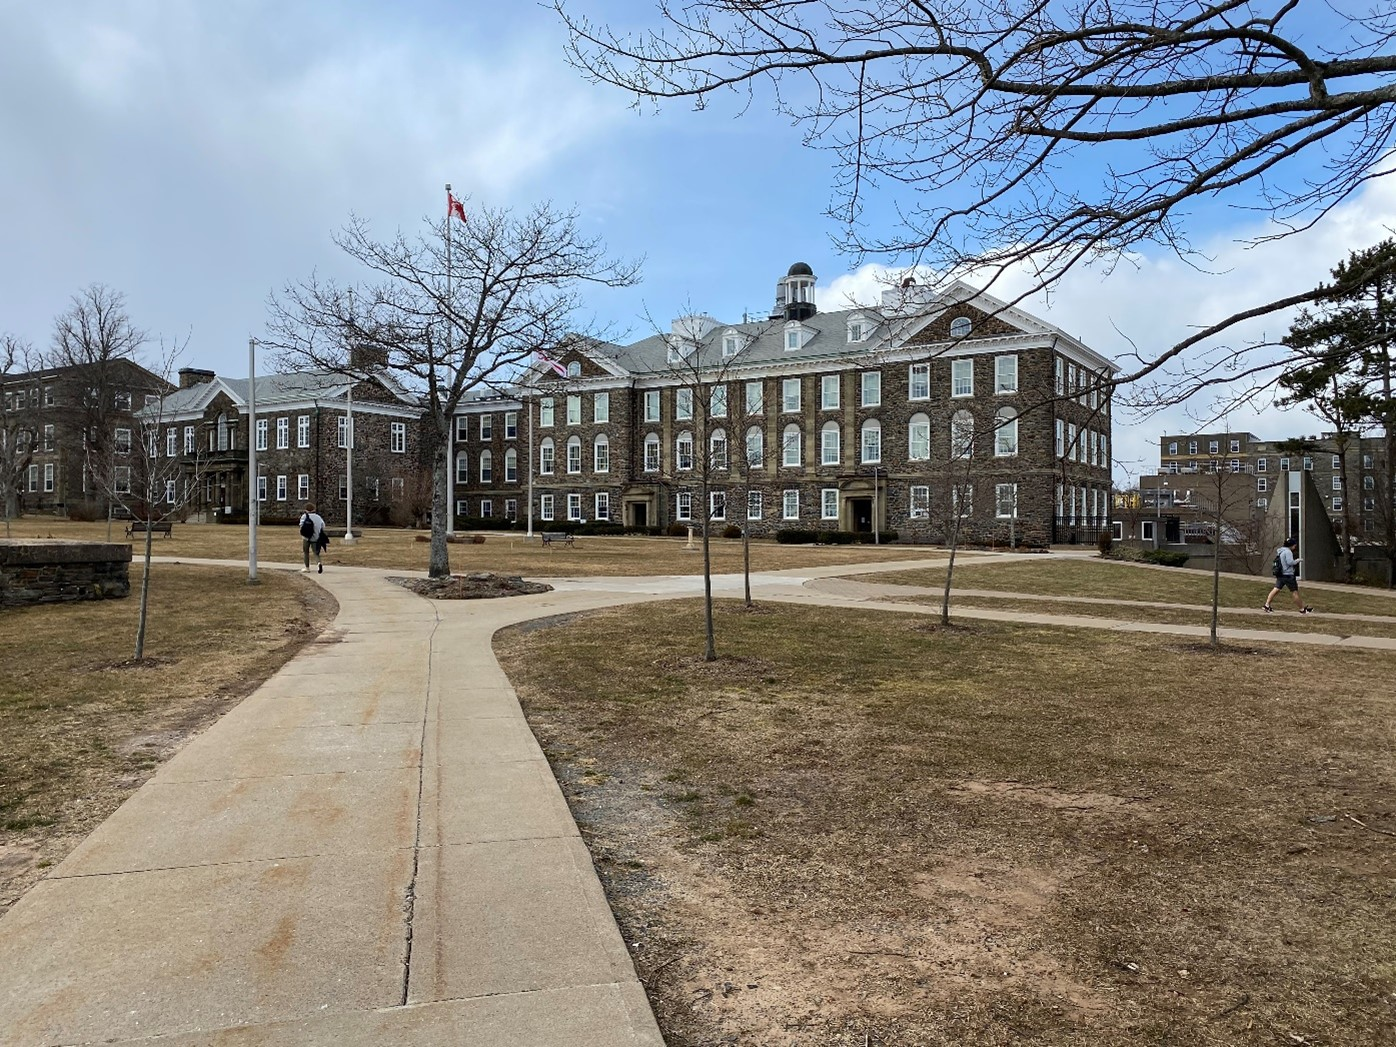 Students stroll through Dalhousie University's quiet campus on South Street, Halifax NS, on March 14, 2021. The once bustling campus has been left mostly deserted by online learning.